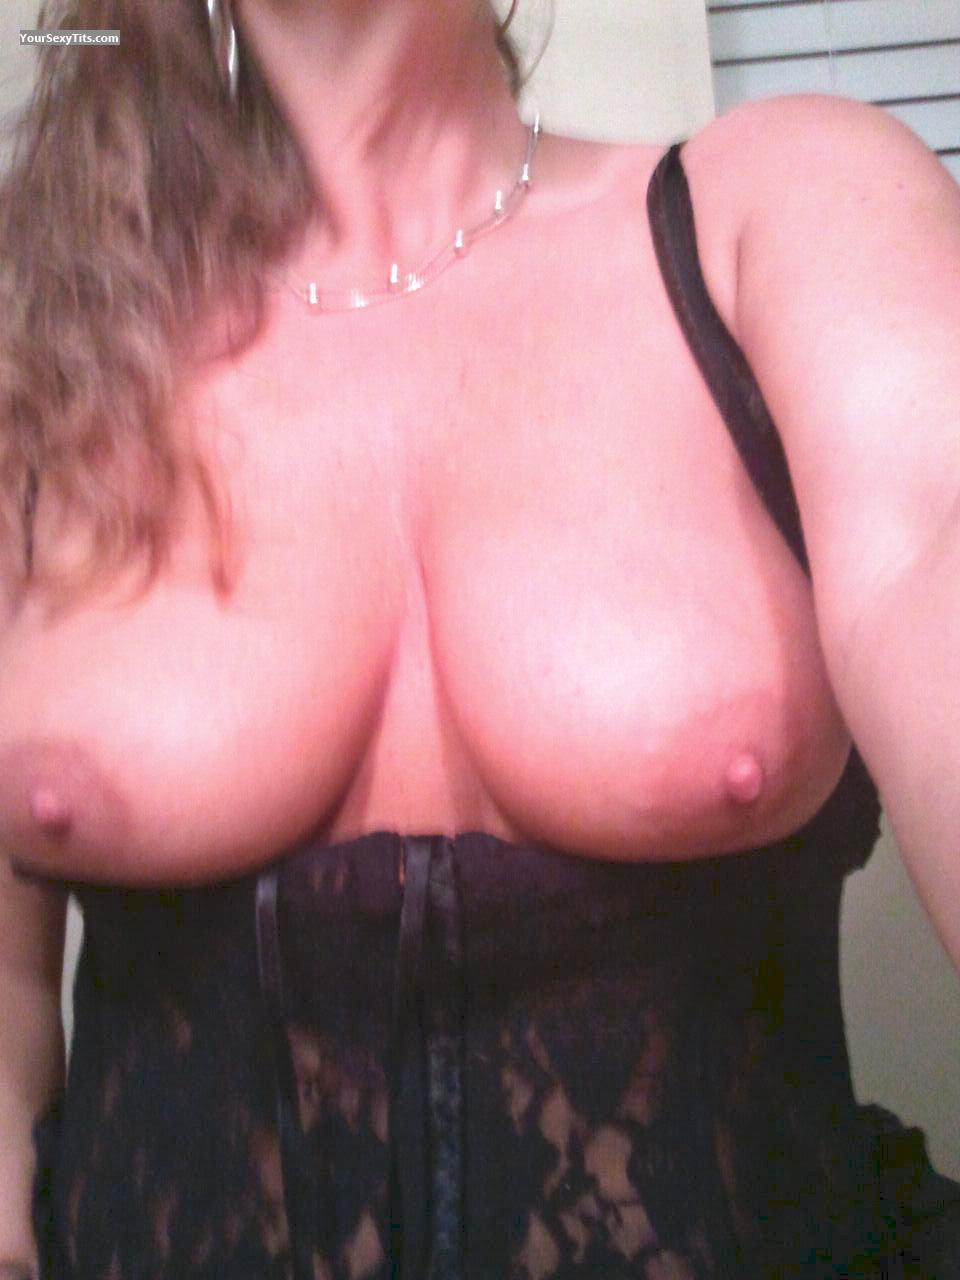 Tit Flash: My Big Tits (Selfie) - Toni from United States